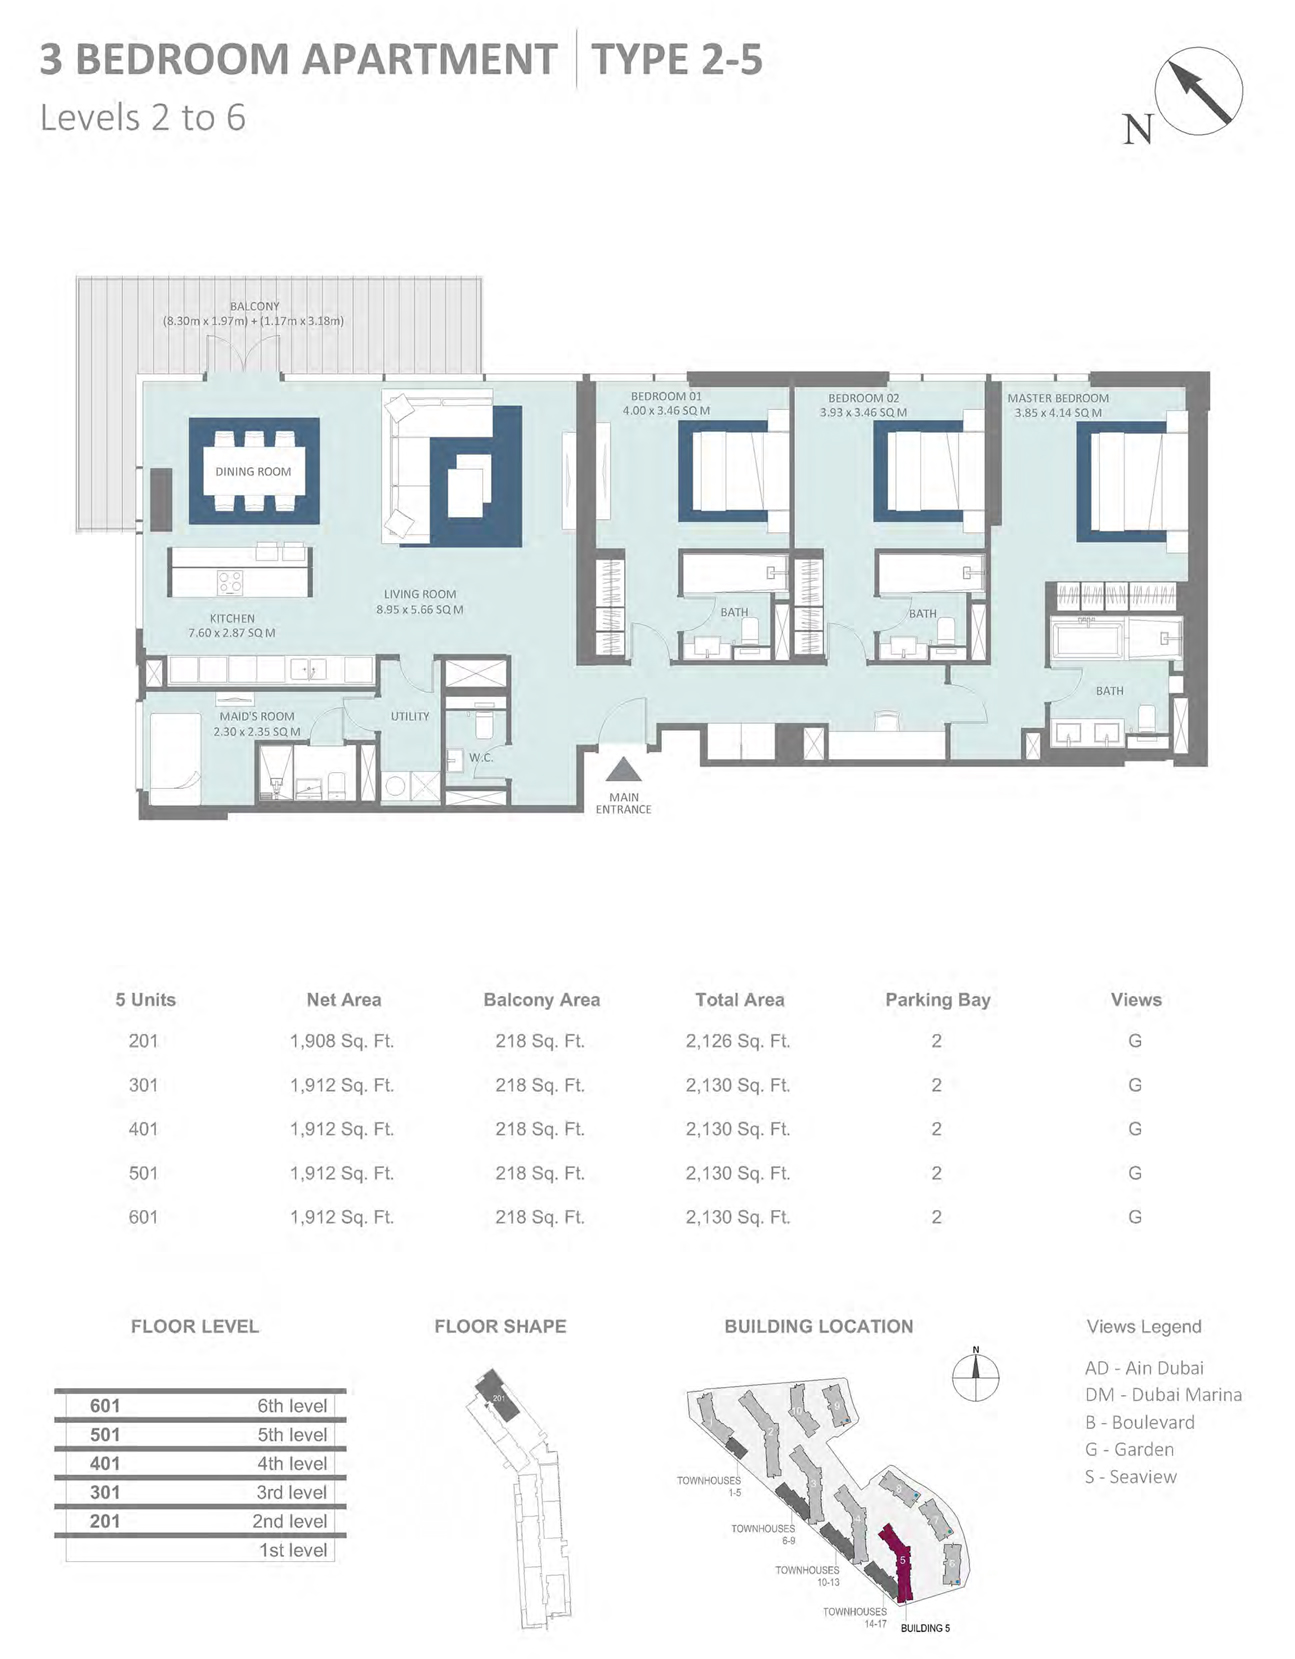 Building 5 - 3 Bedroom Type 2-5 Level 2-6 , Size 2130    sq. ft.